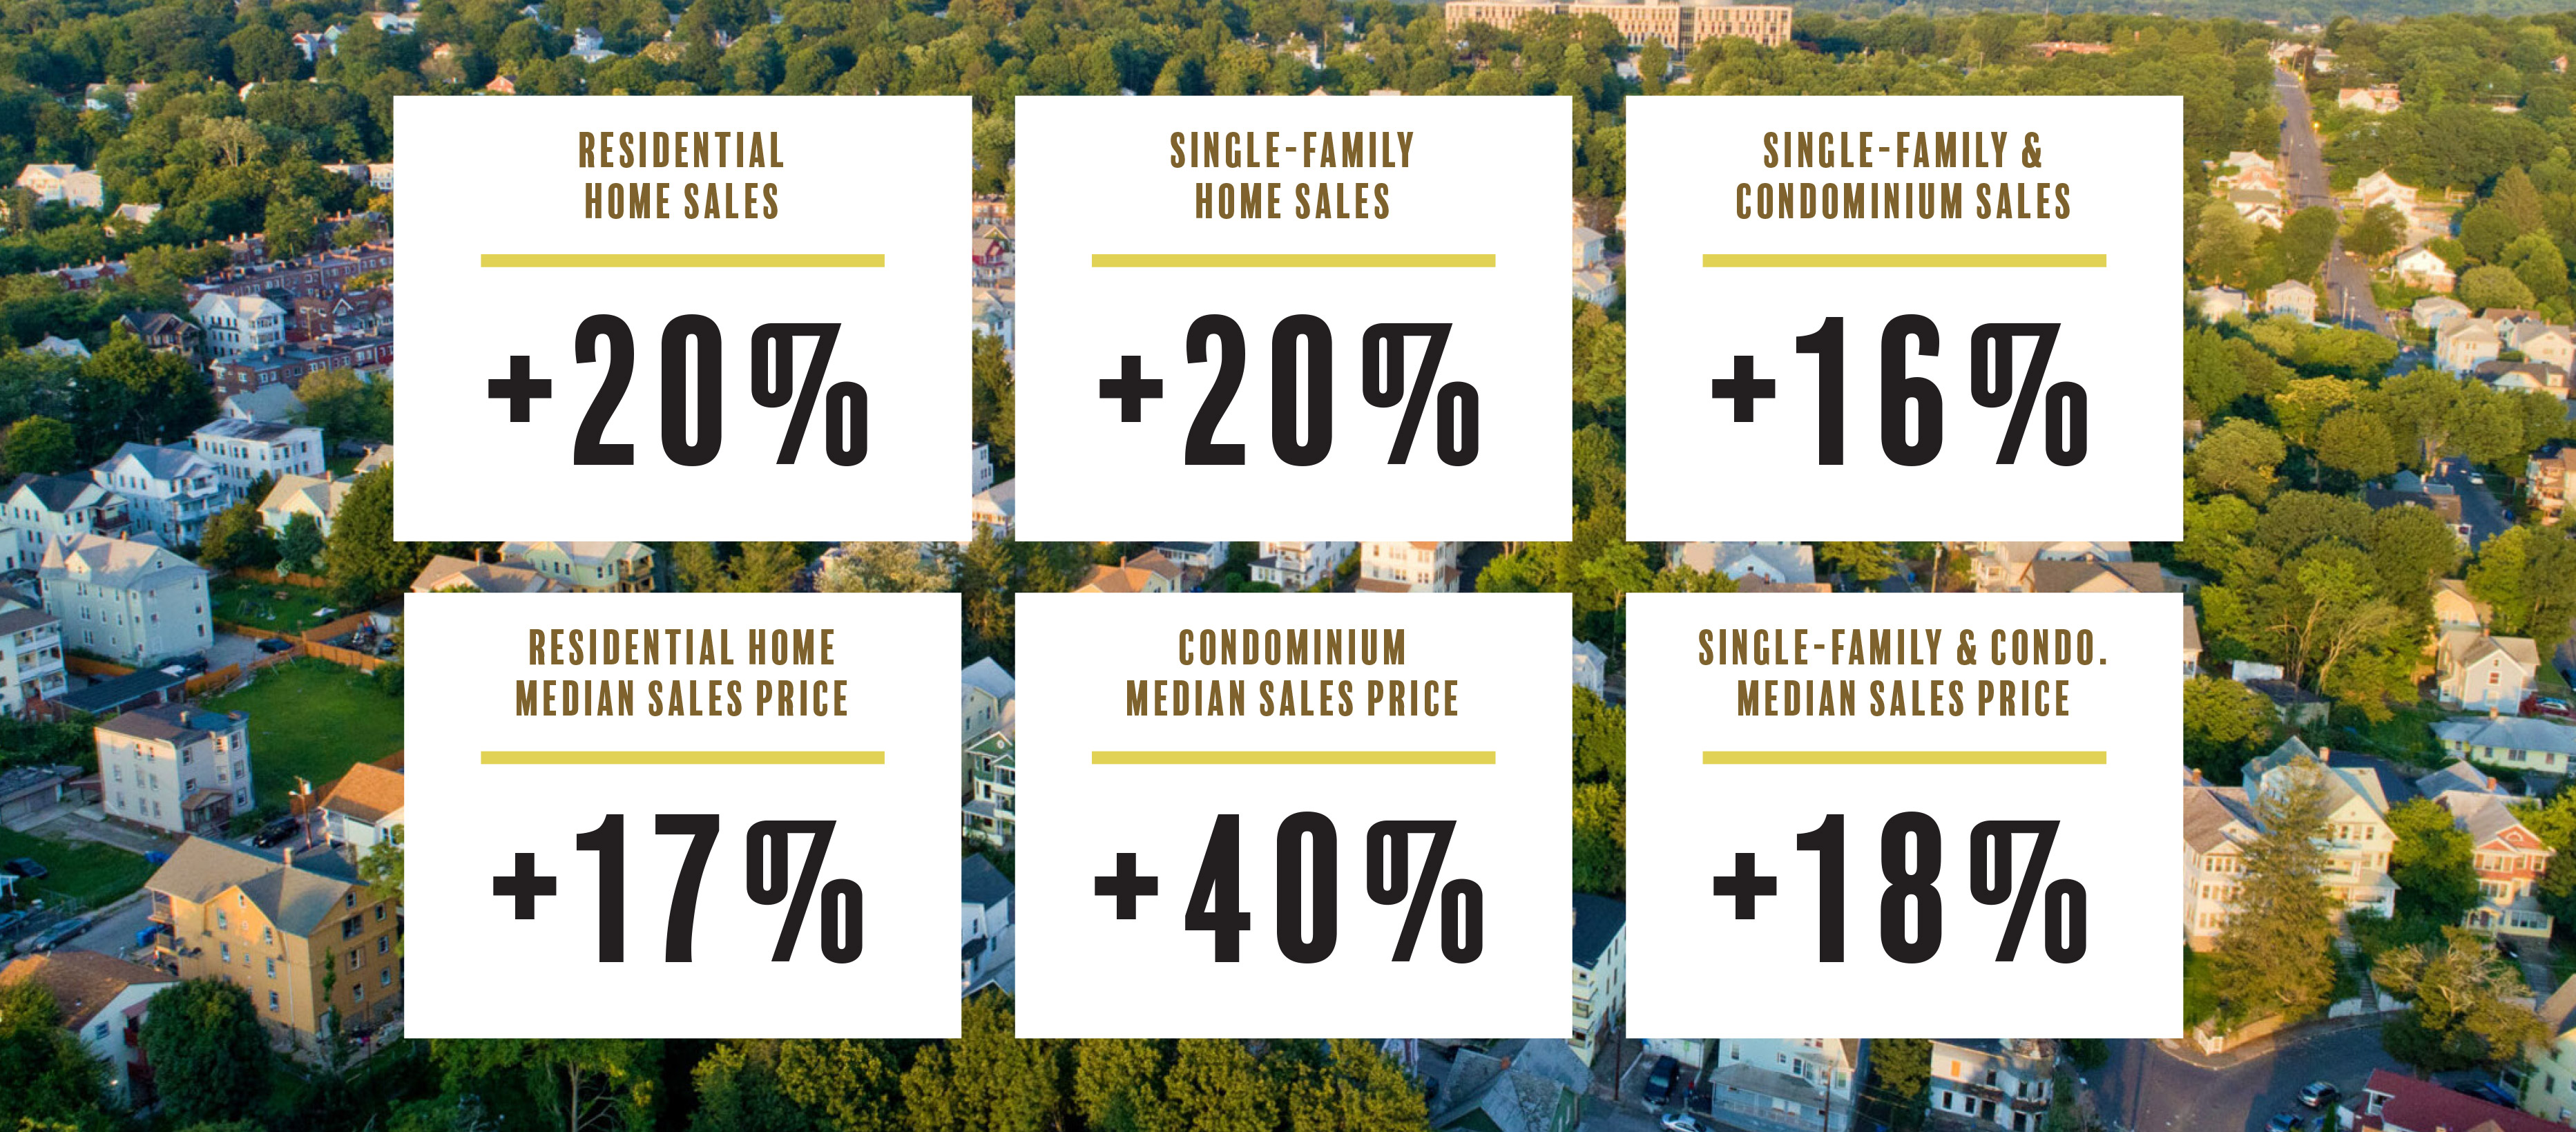 Infographic showing the increased property values of residential homes in Waterbury, CT